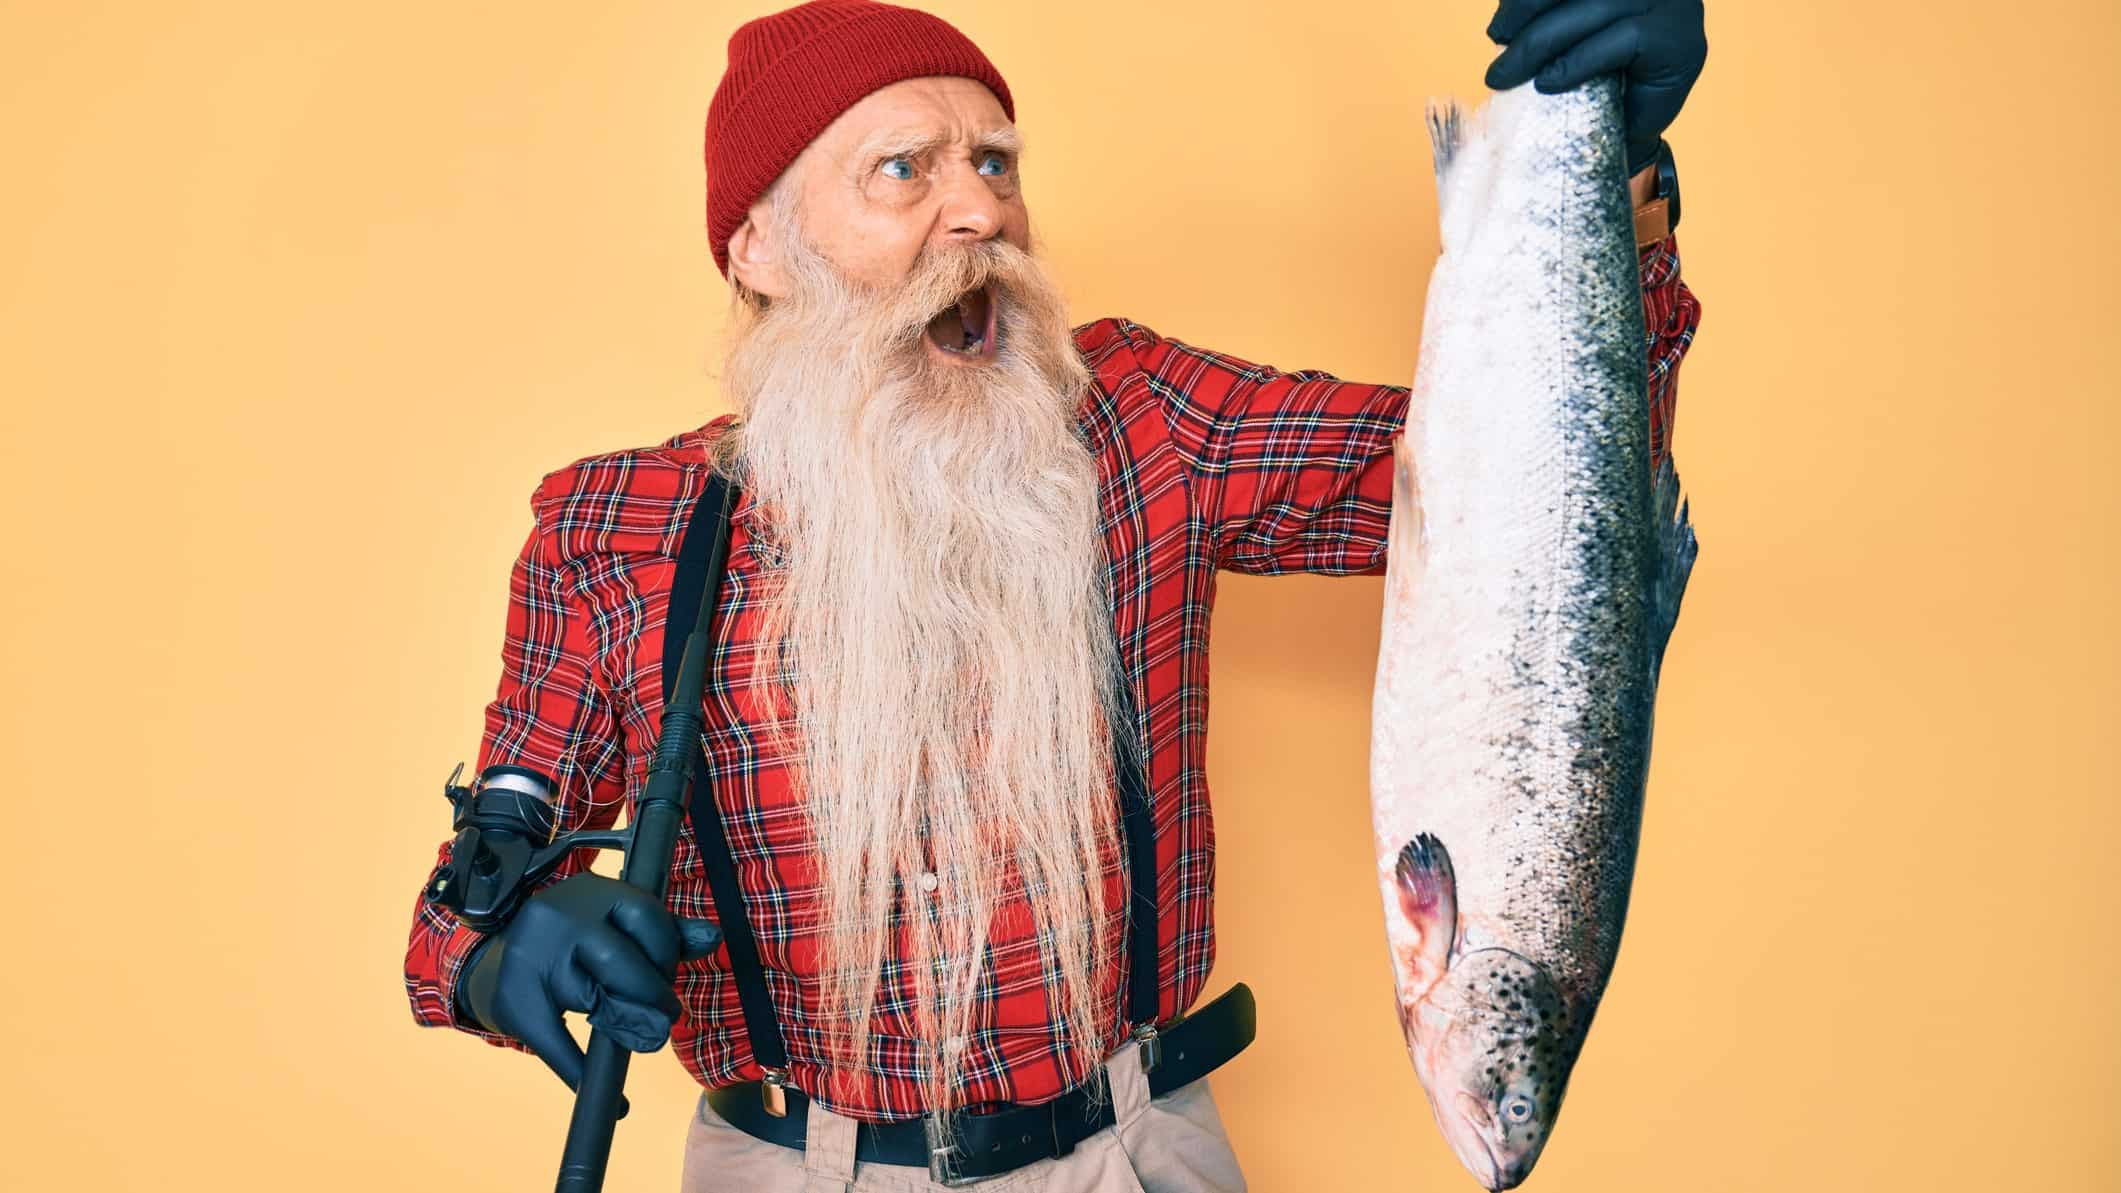 a fisherman with a long beard makes a crazy widemouthed face at a large salmon held by the tail in one of his hands.